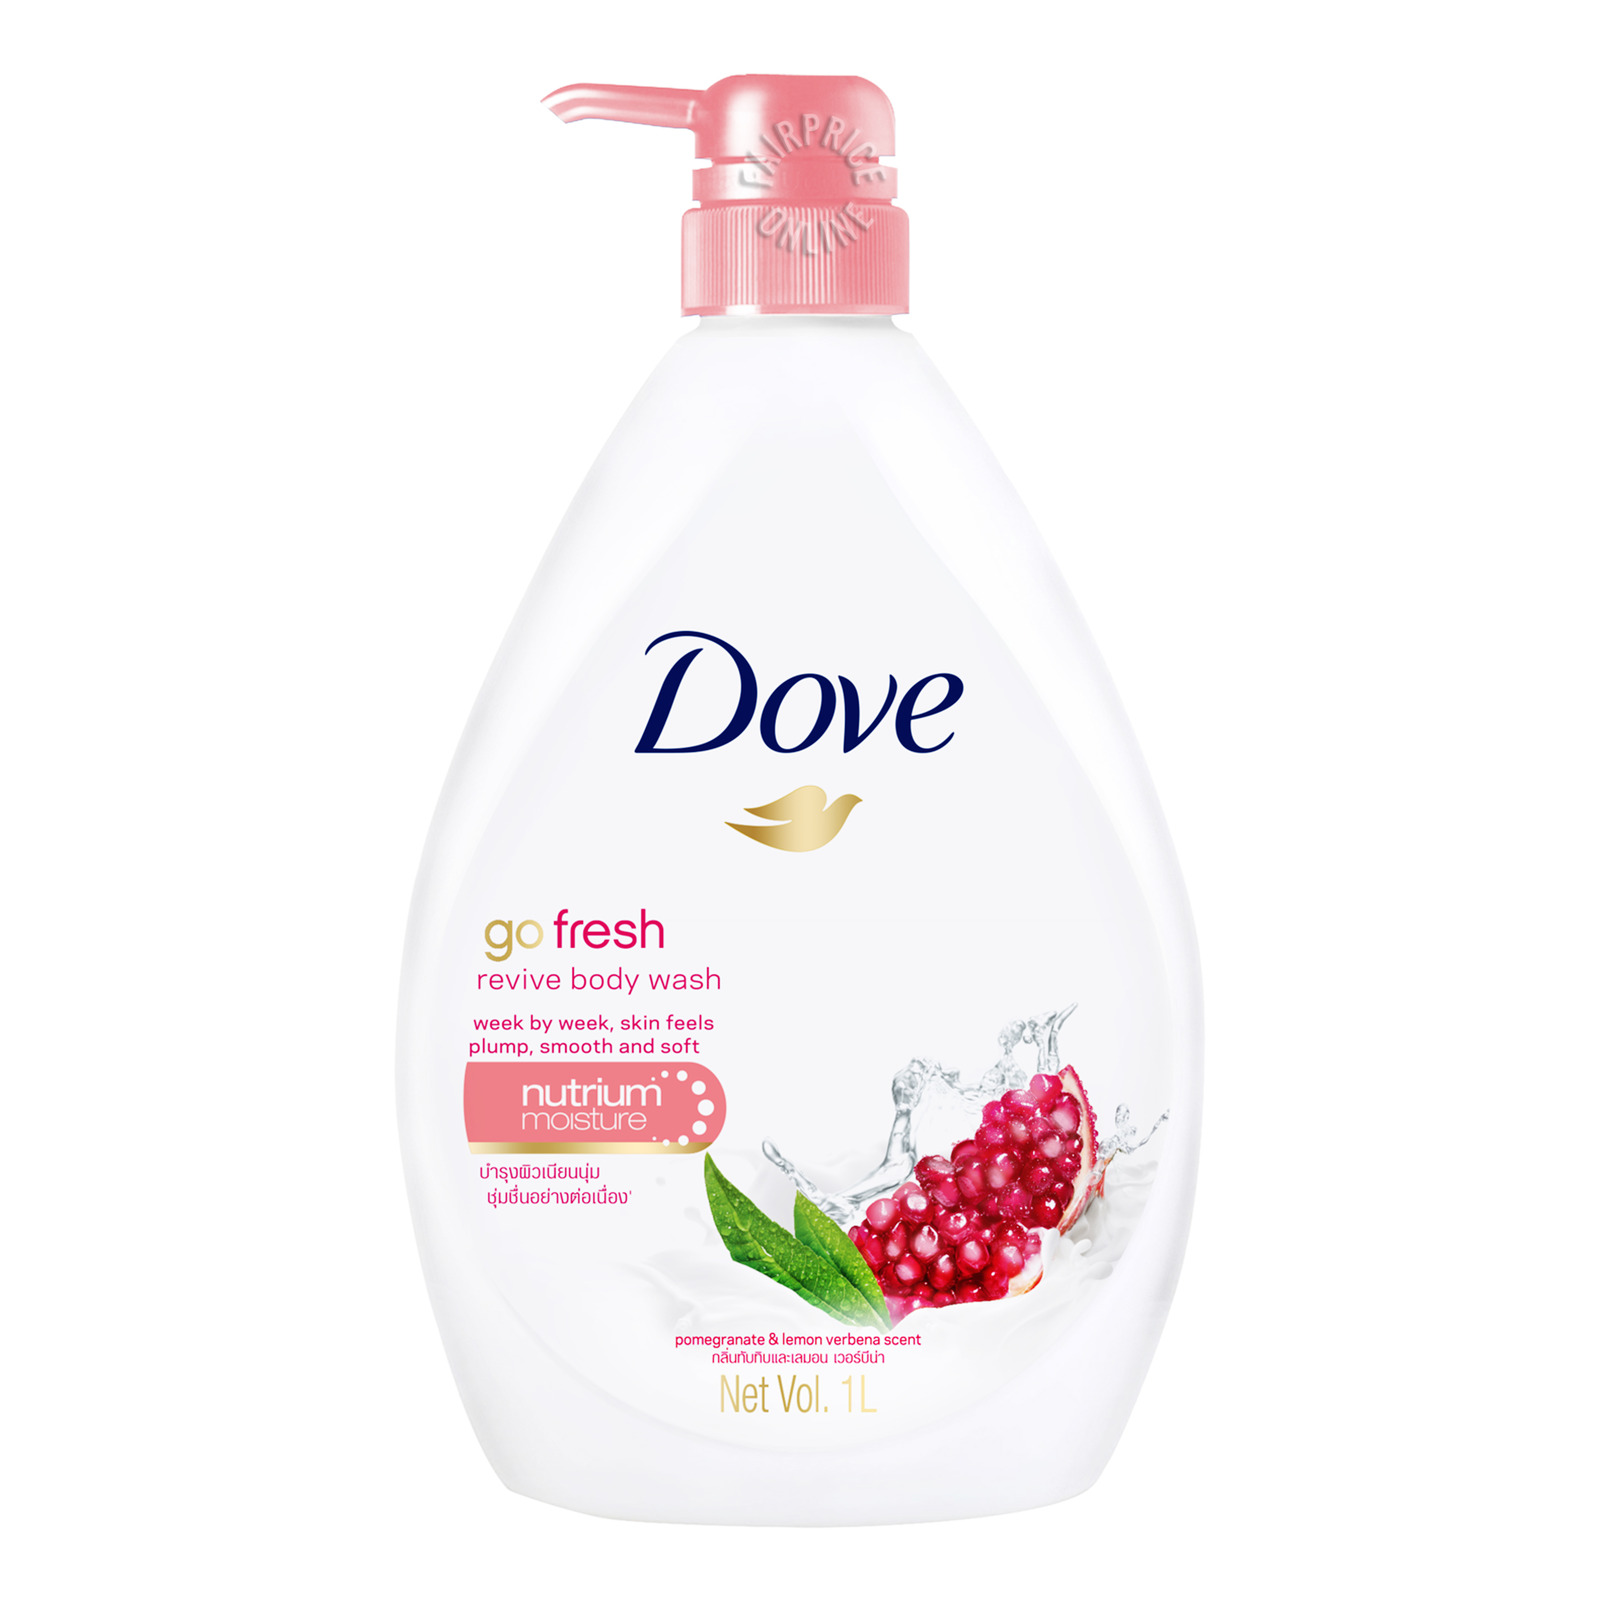 DOVE go fresh bodywash japanes yuzu x glacier water 1l